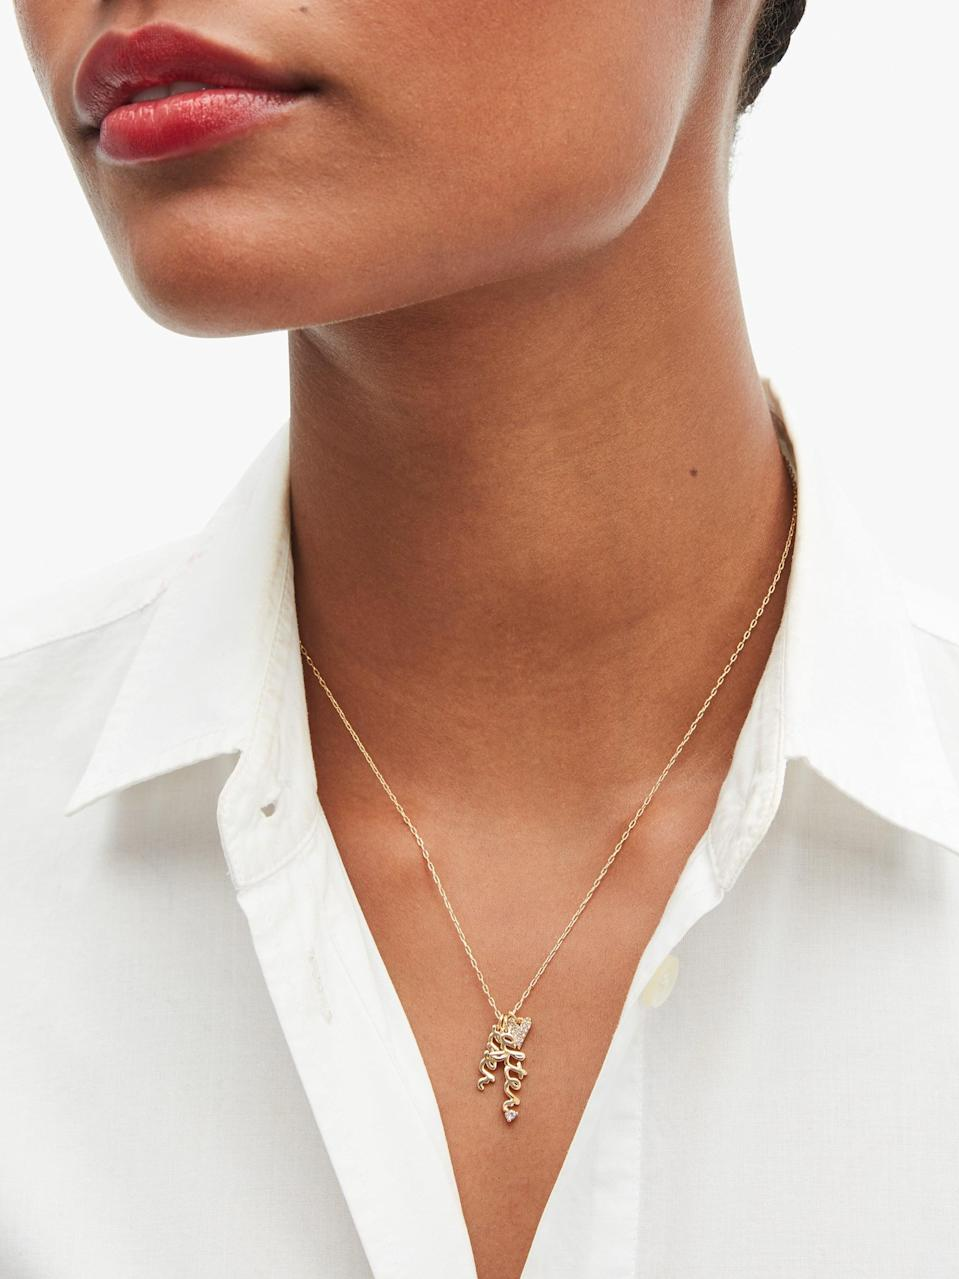 <p>This <span>Kate Spade New York Say Yes Ever After Charm Necklace</span> ($68) pays homage to a storybook romance.</p>